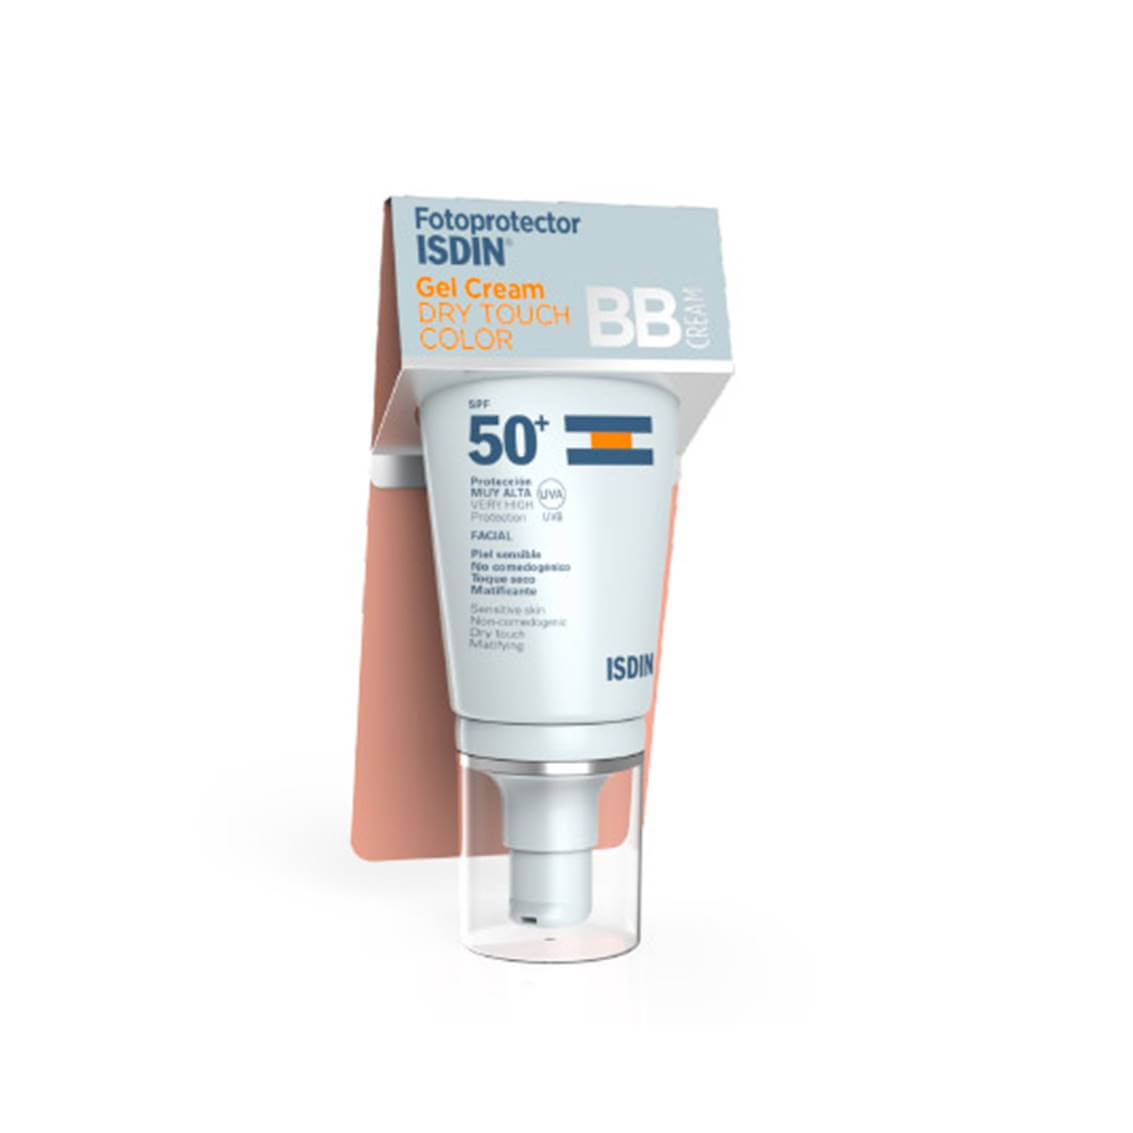 Fotoprotector Isdin Gel Crema Toque Seco Color Spf 50 50 ml